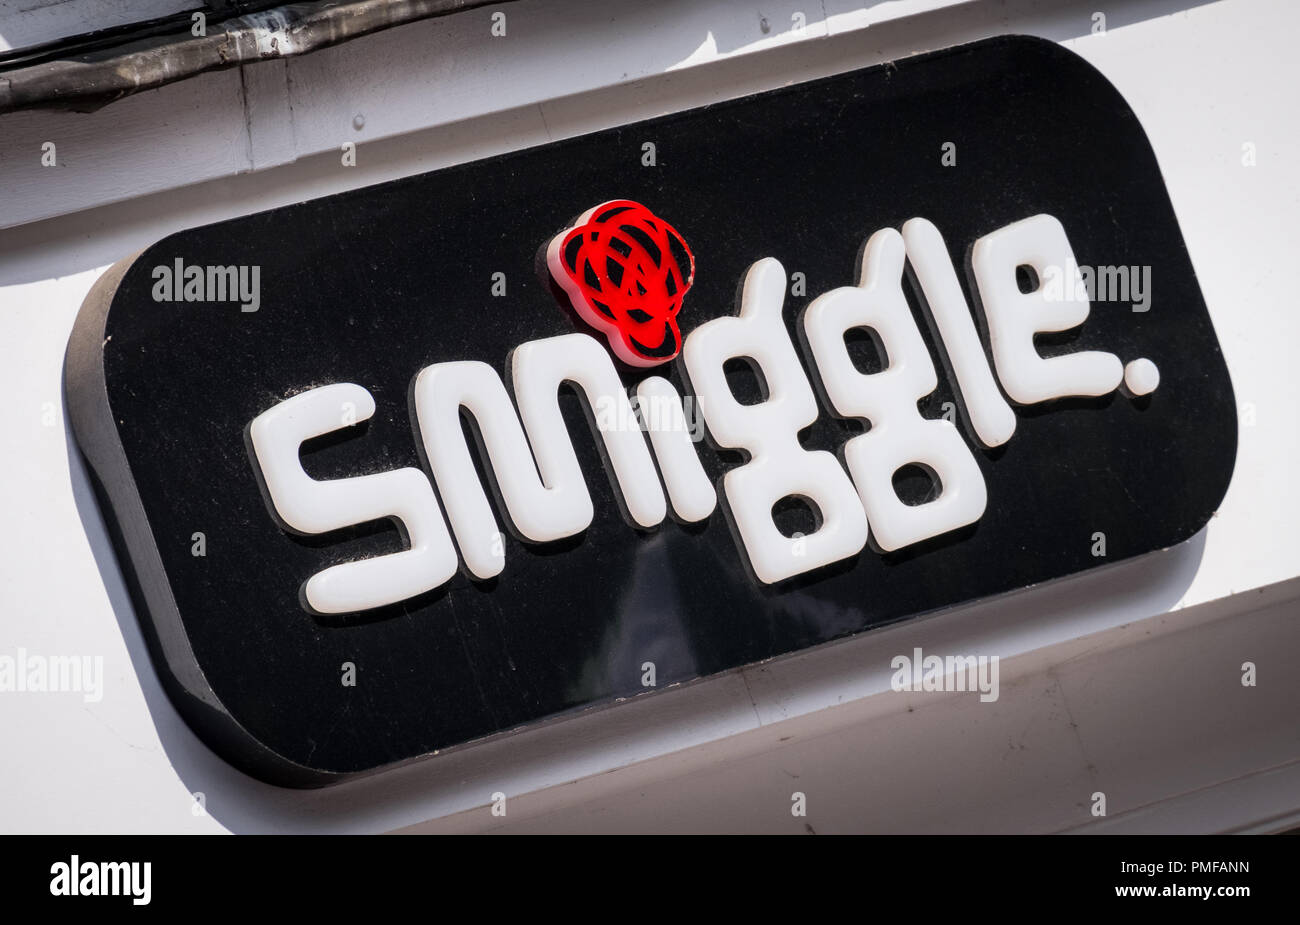 Smiggle store sign - Stock Image